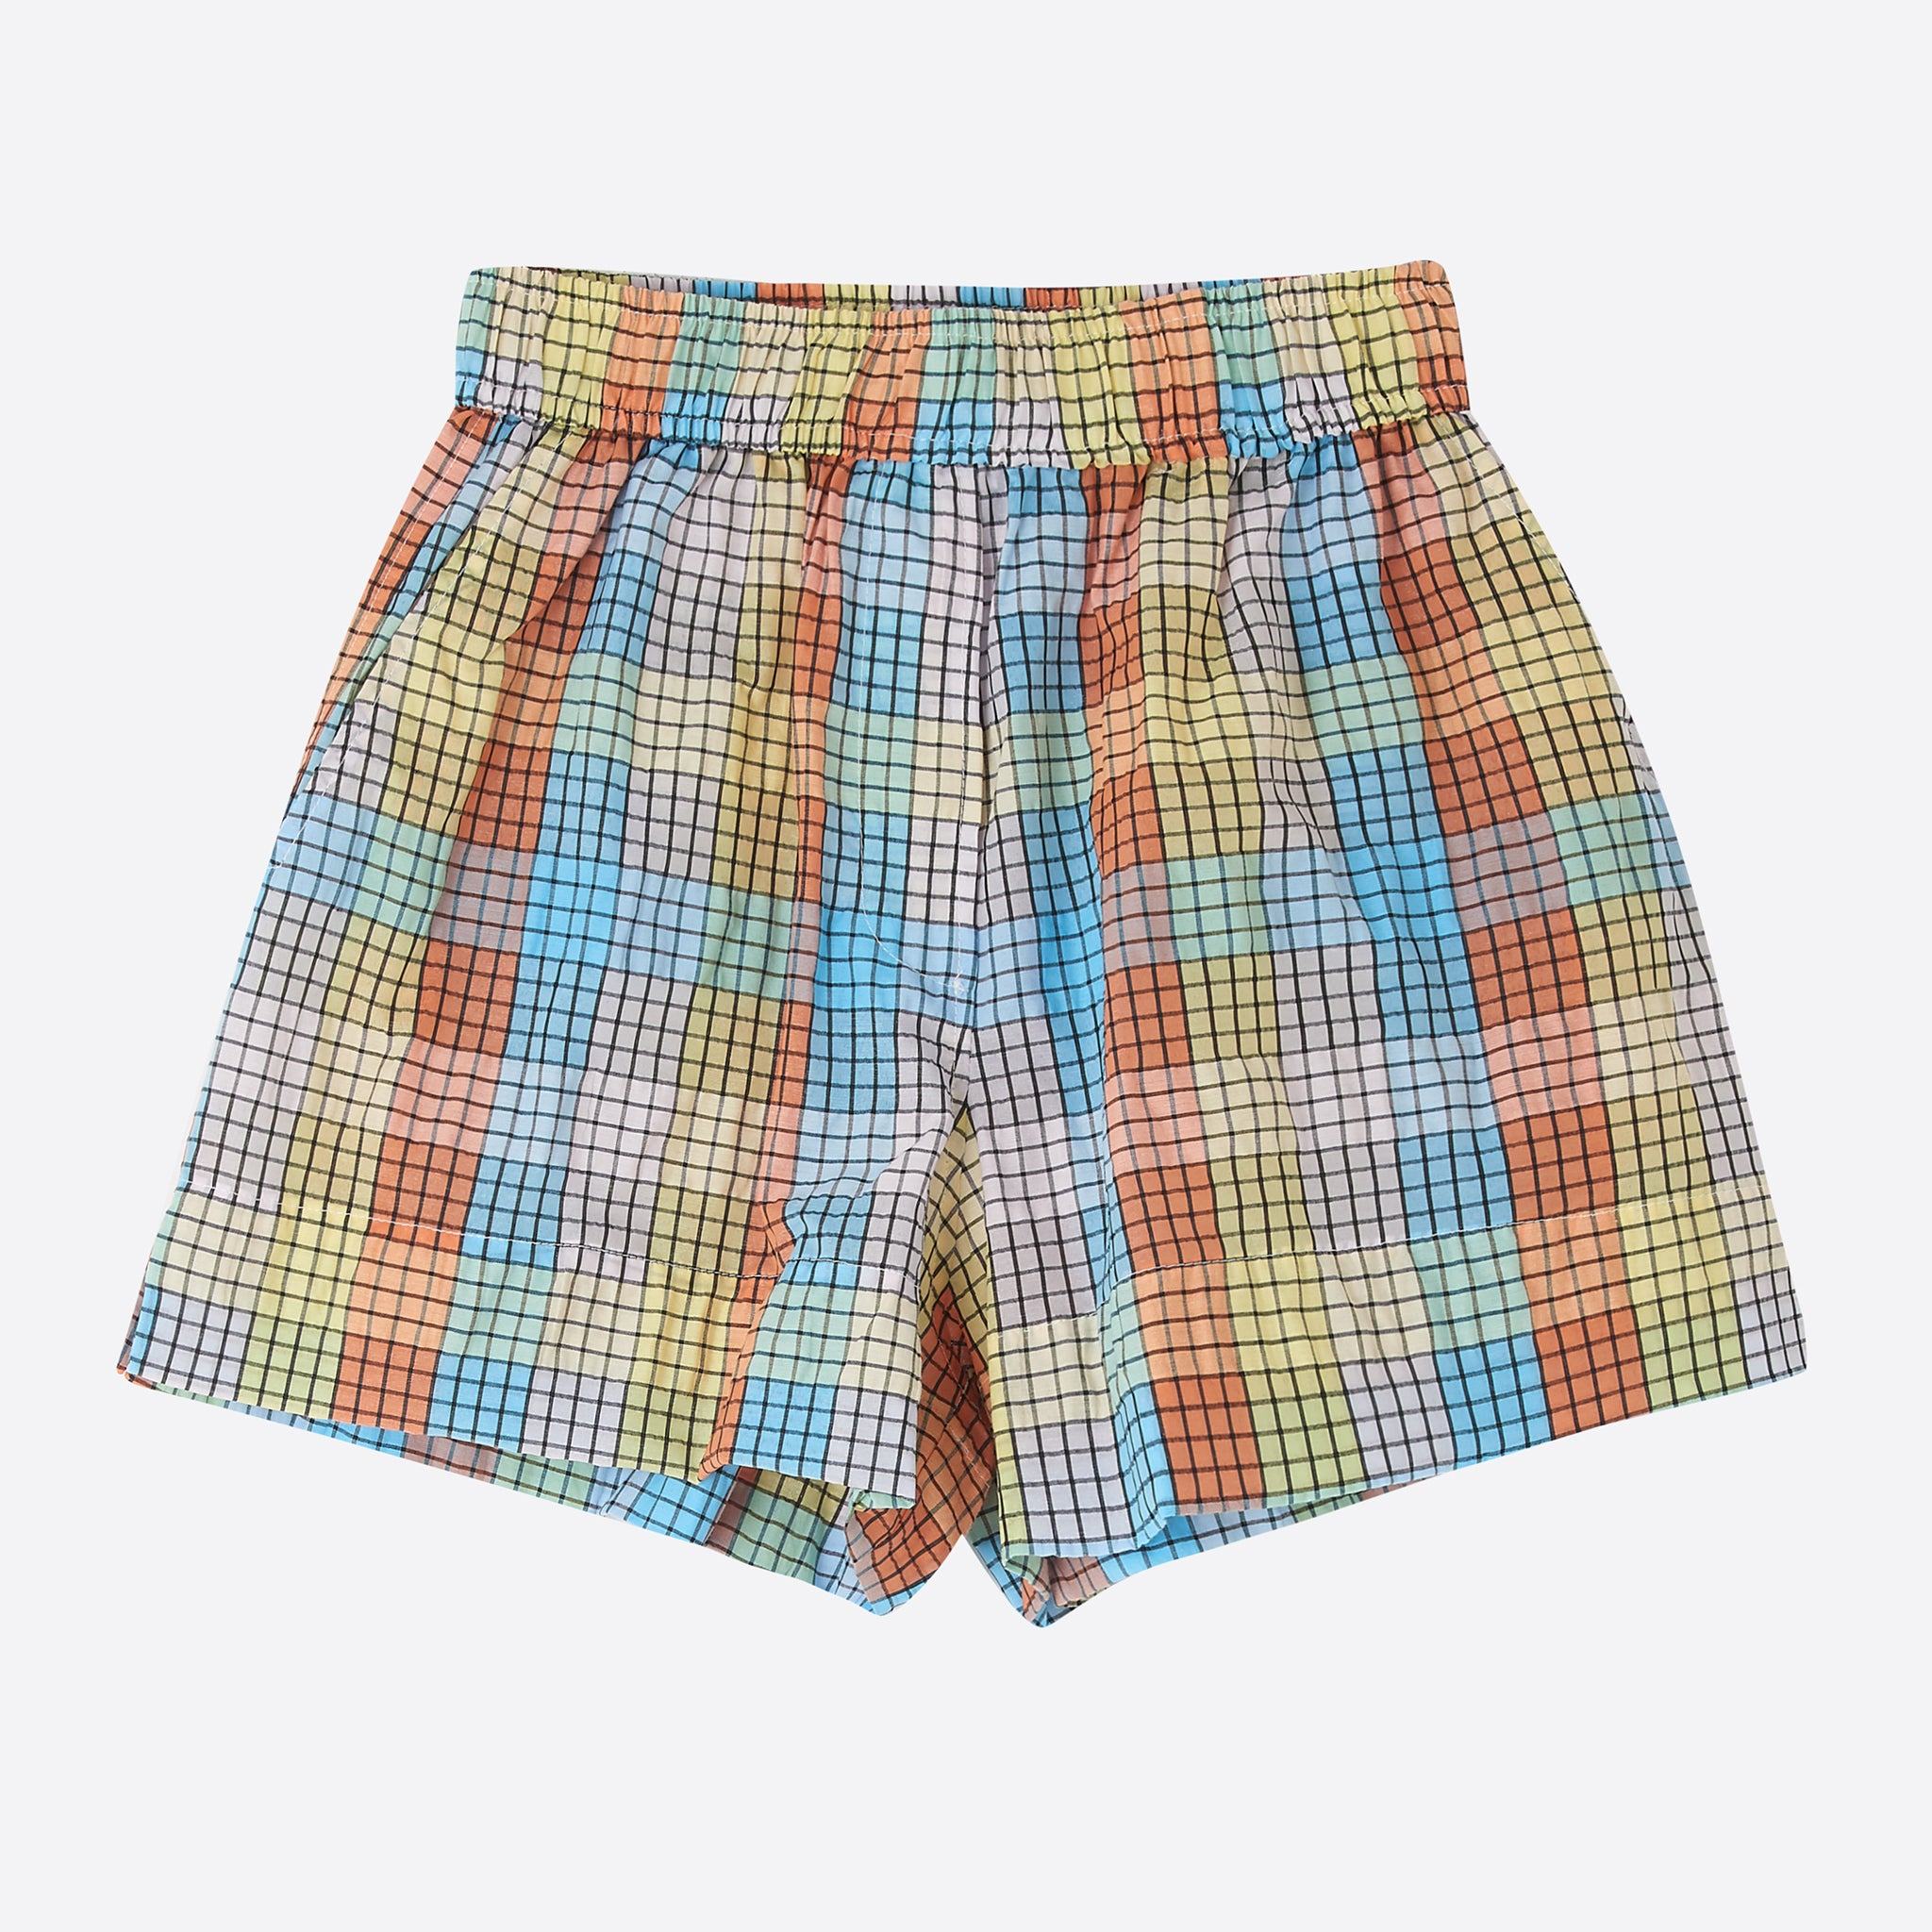 Ganni Seersucker Check Shorts in Multicolour